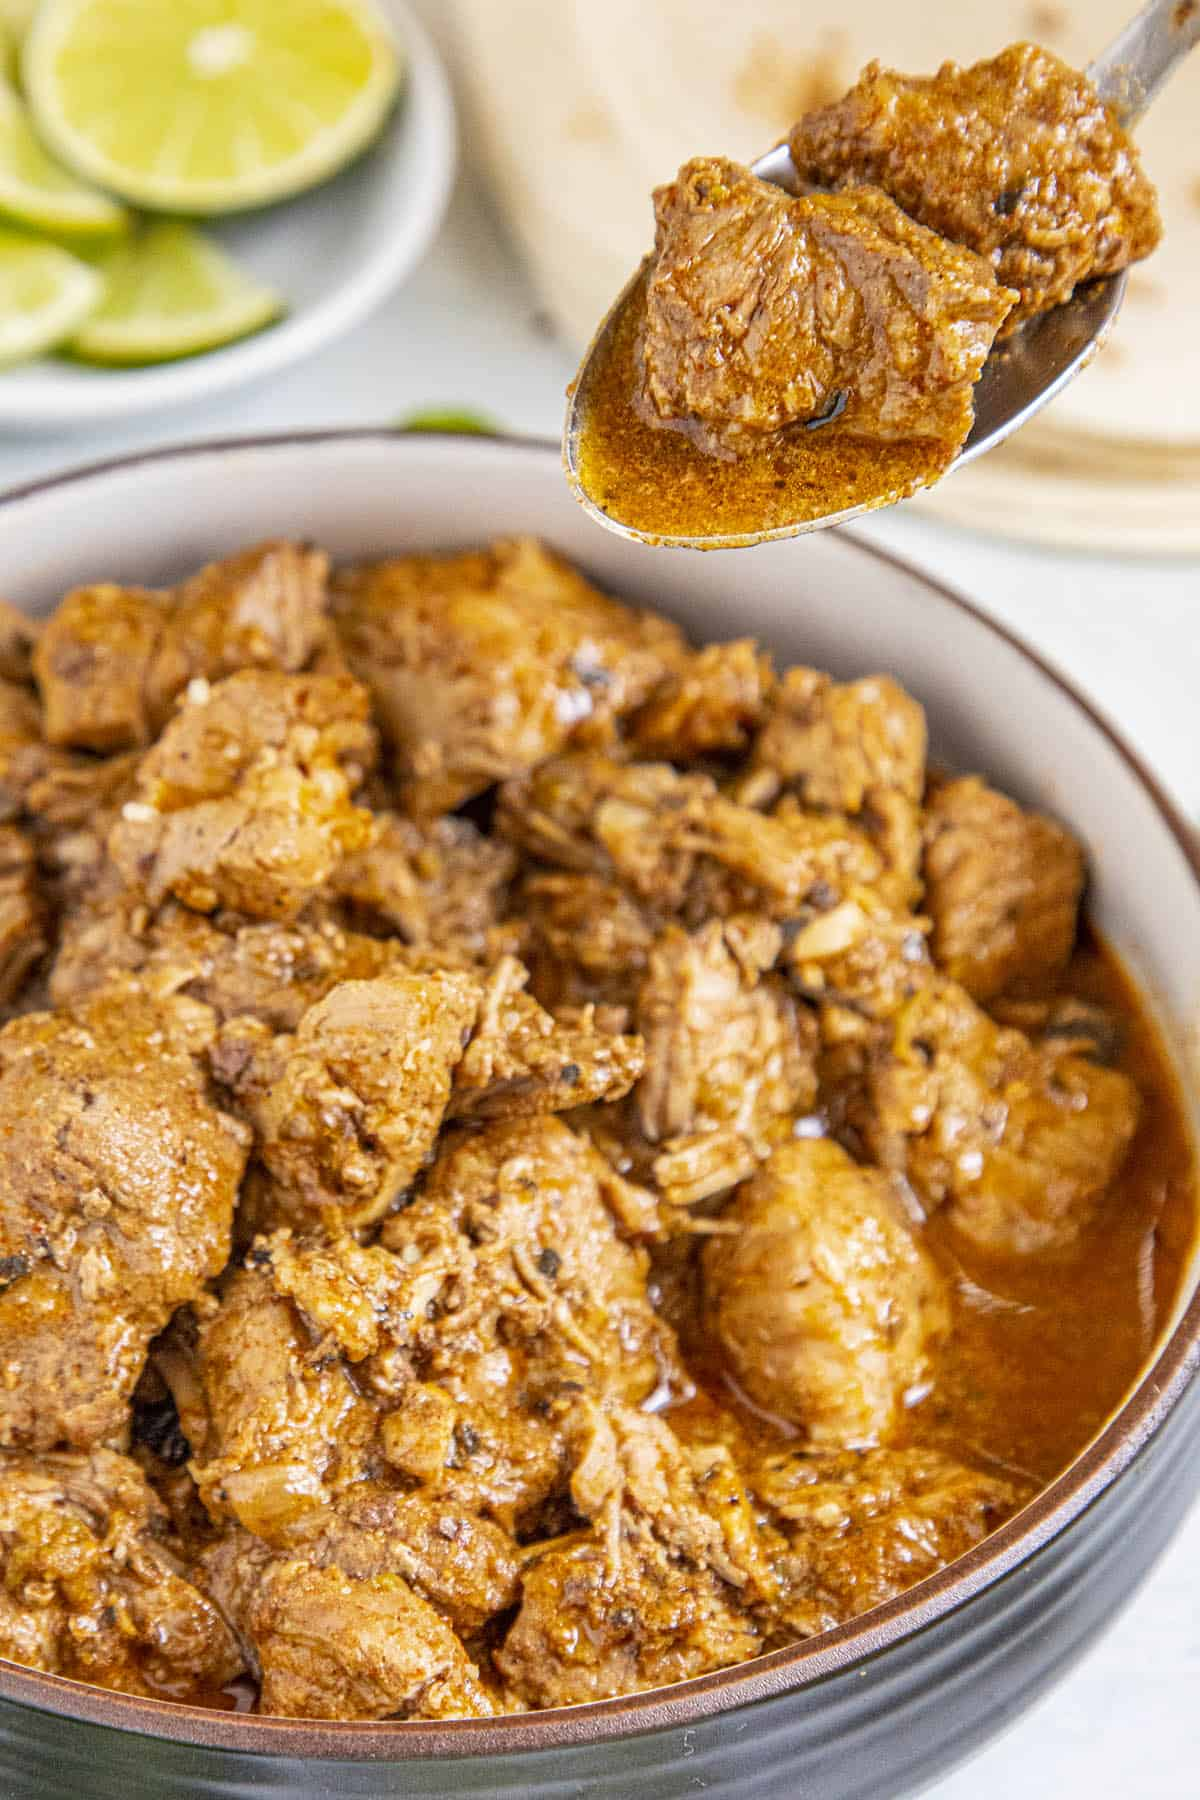 Chunky pieces of Carne Adovada on a spoon